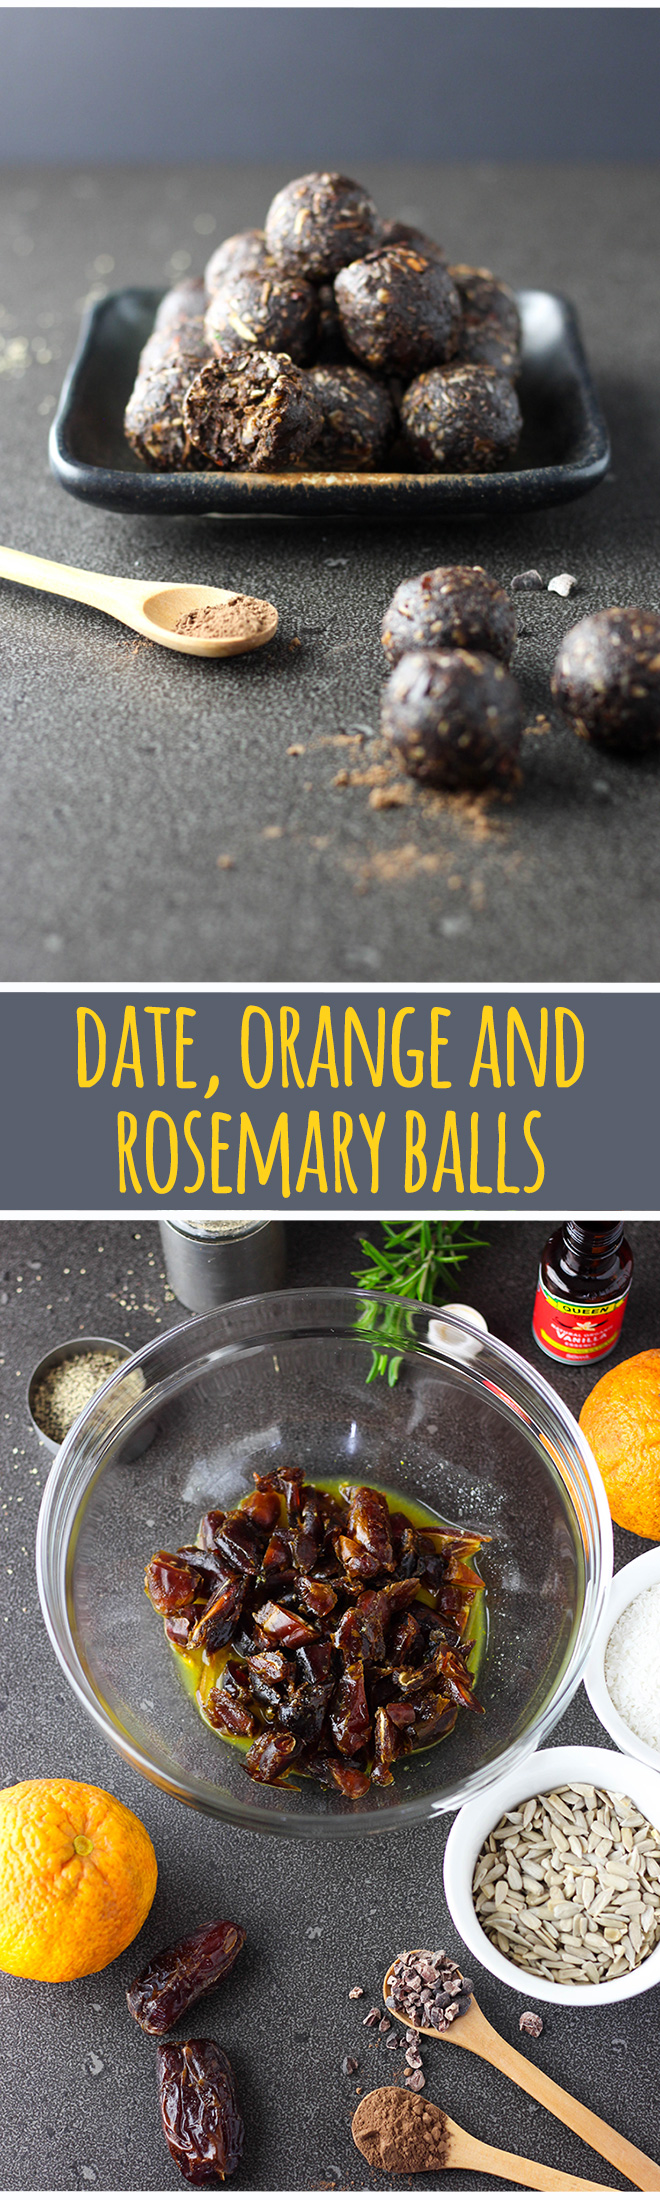 Date, orange and rosemary balls are dark and delicious, a bit grown up and a little bit healthy.